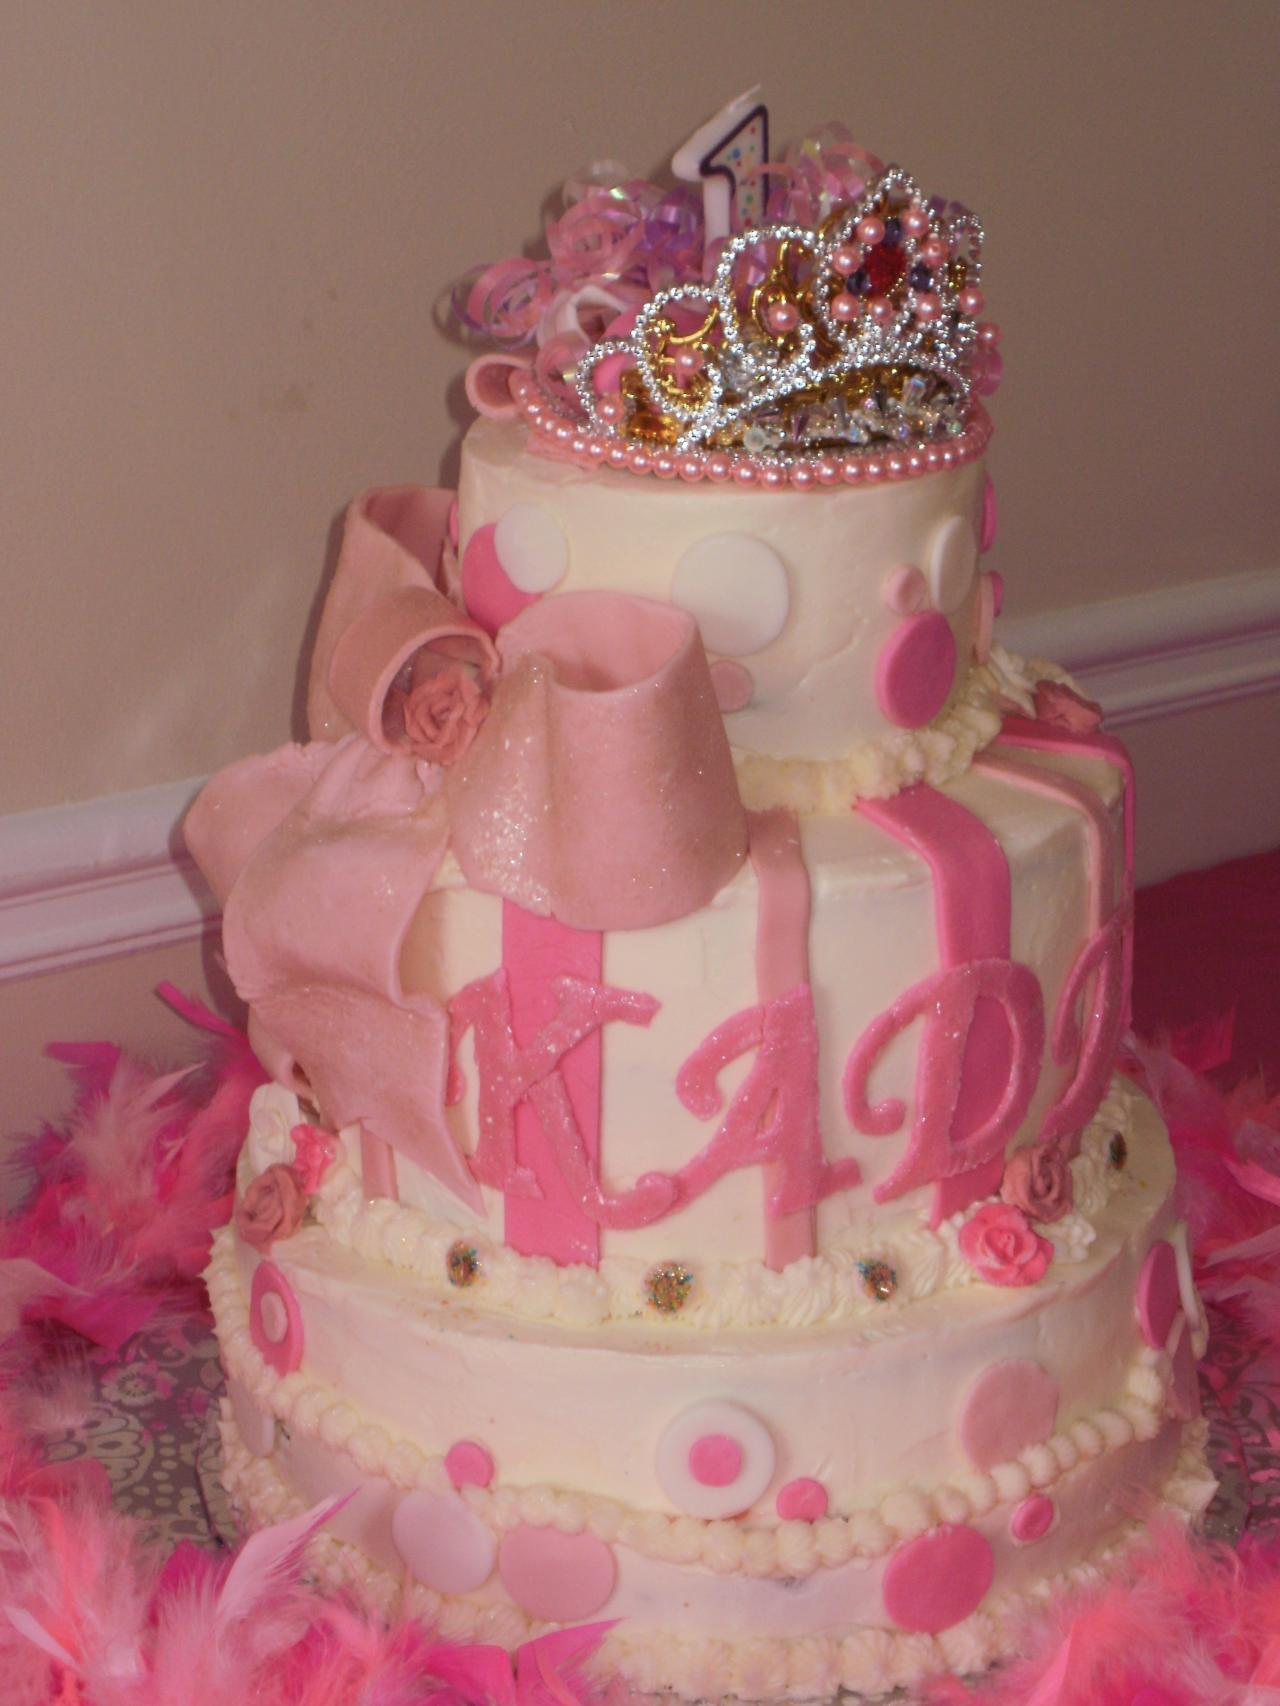 Related Cake Boss Wedding Cakes Gallery